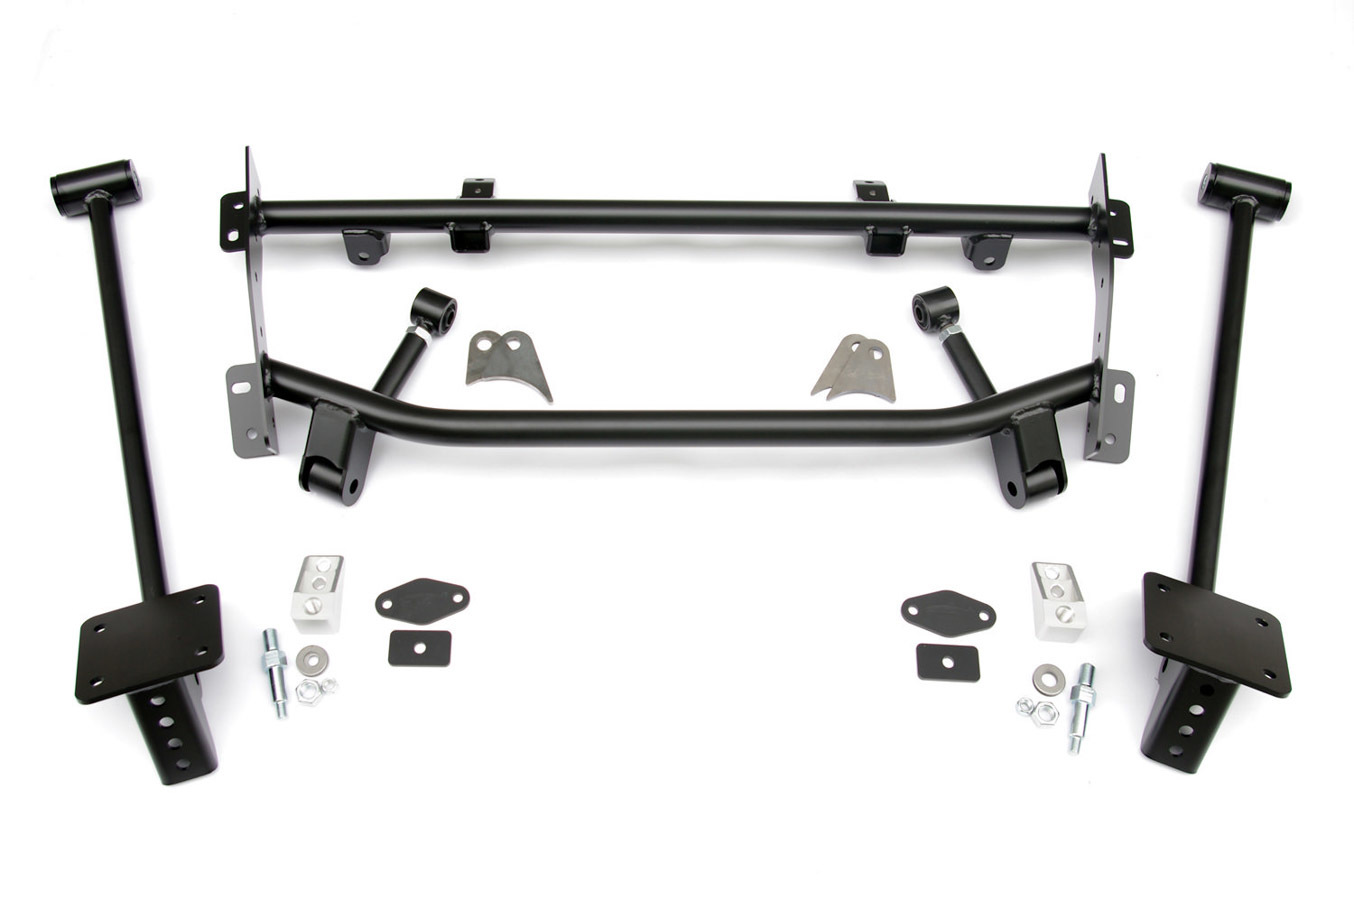 Ridetech 11167199 Four Link Kit, Bolt-On, Brackets / Hardware Included, Steel, Black Powder Coat, Airbag Suspension, GM F-Body 1967-69, Kit